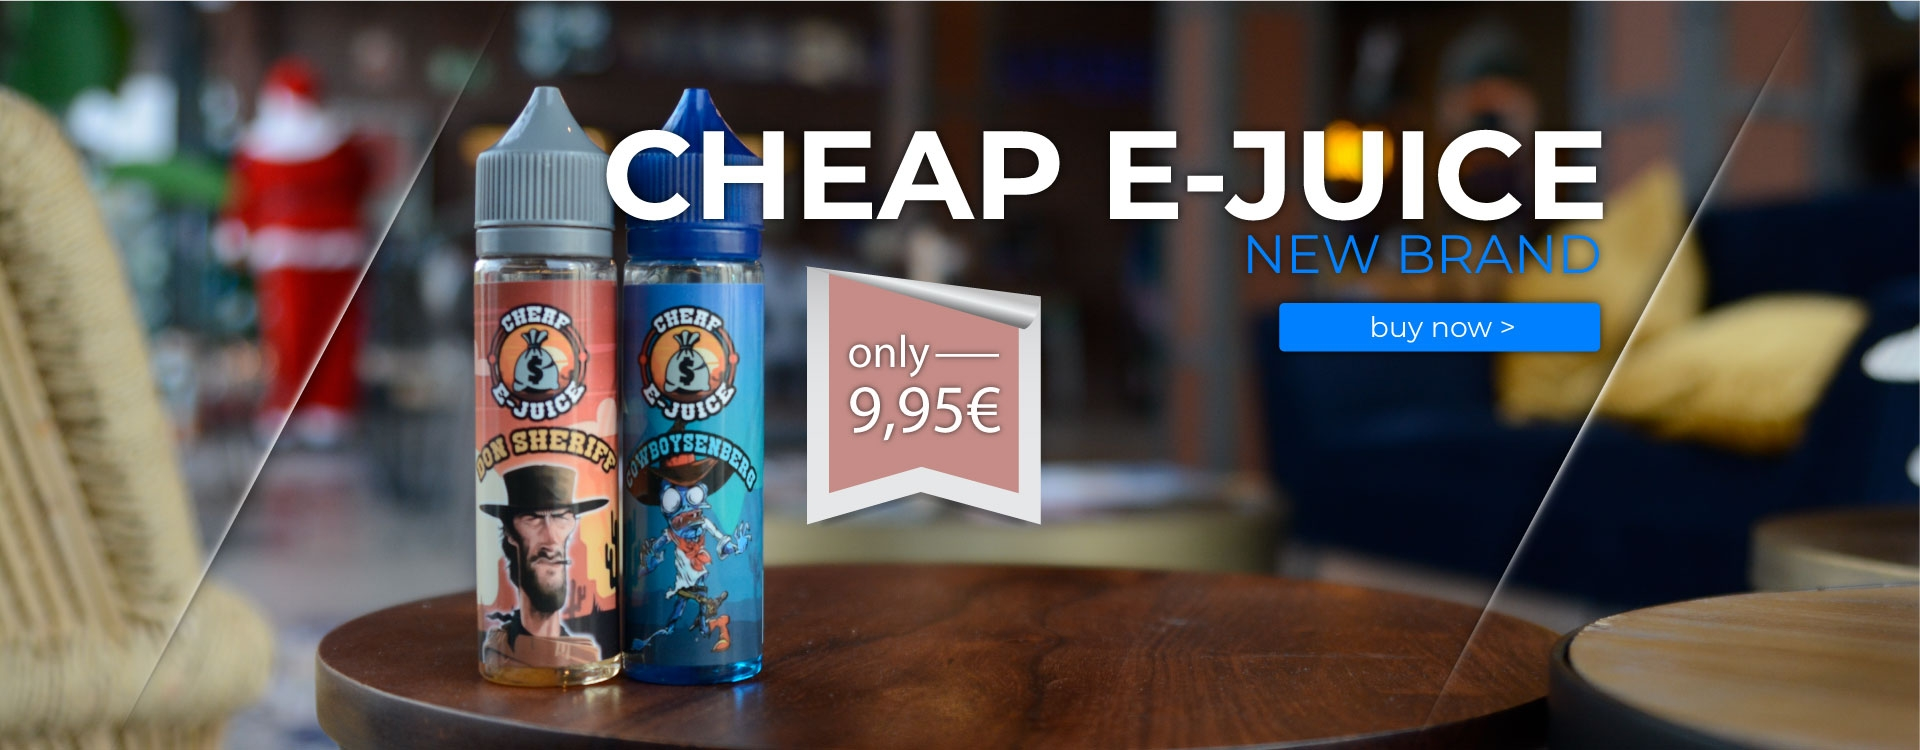 CHEAP E-JUICE